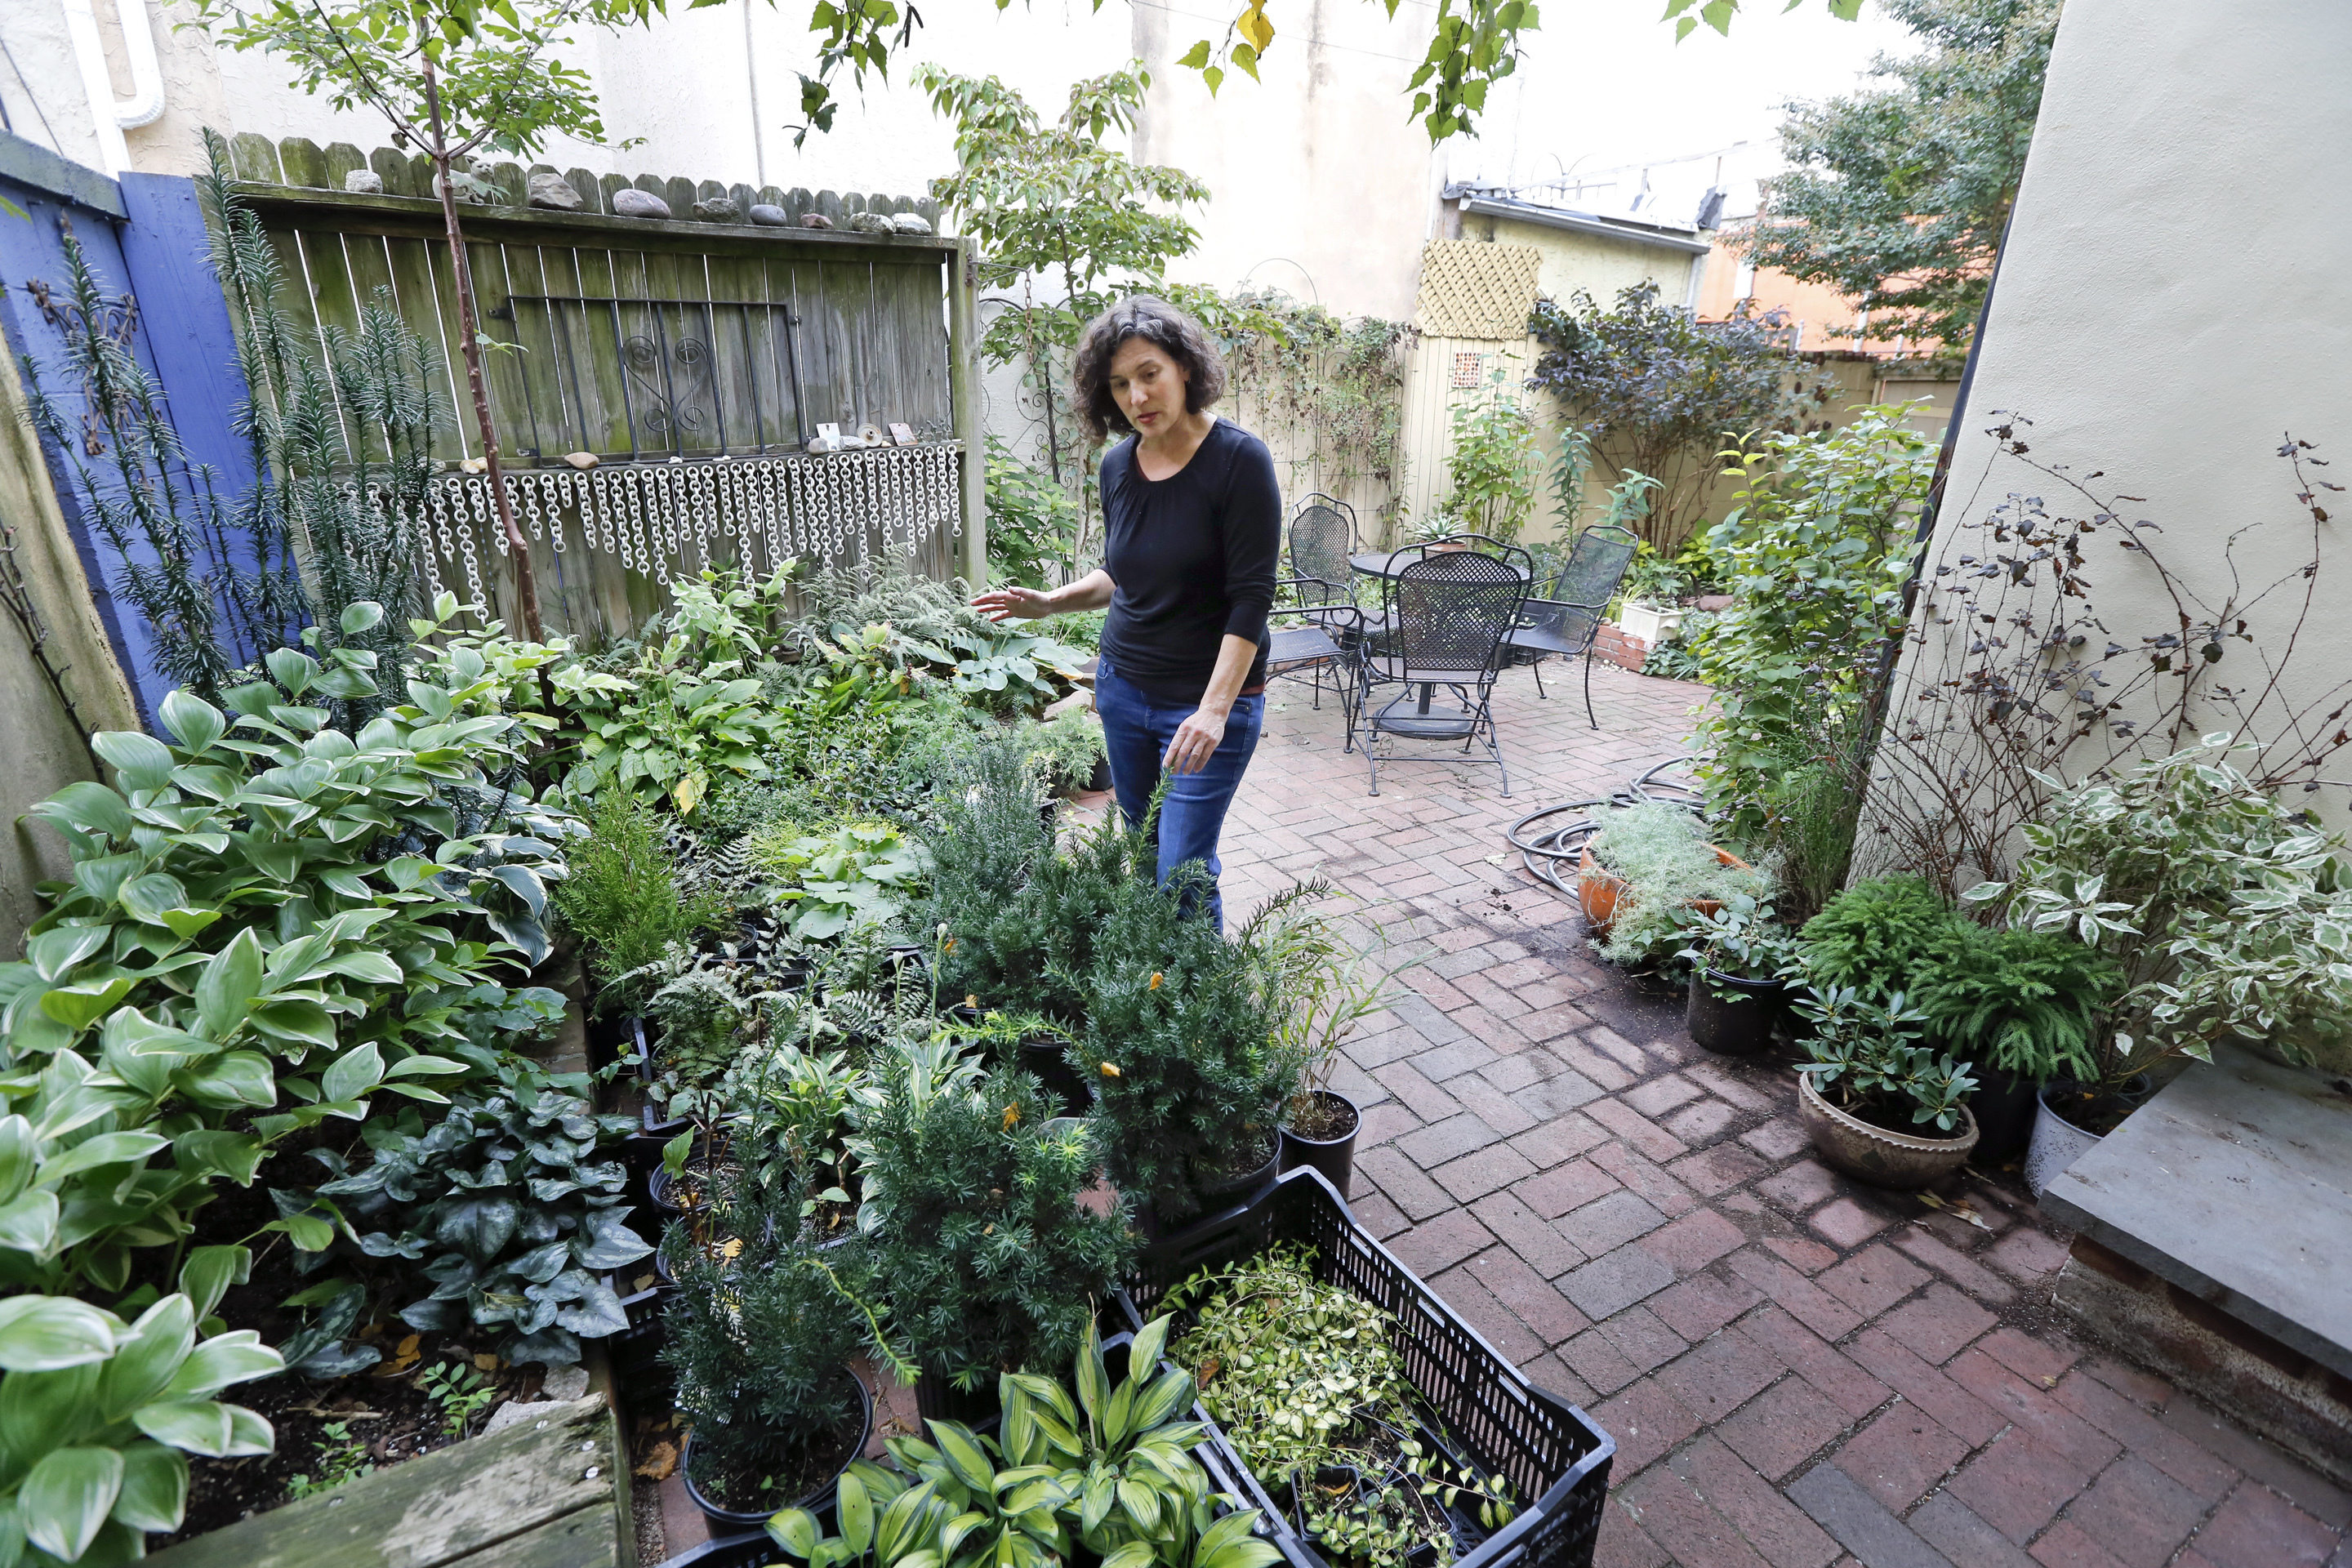 Airbnb host Carrie Borgenicht, on the patio at her South Philadelphia home. She says the income helped her start an urban gardening business.